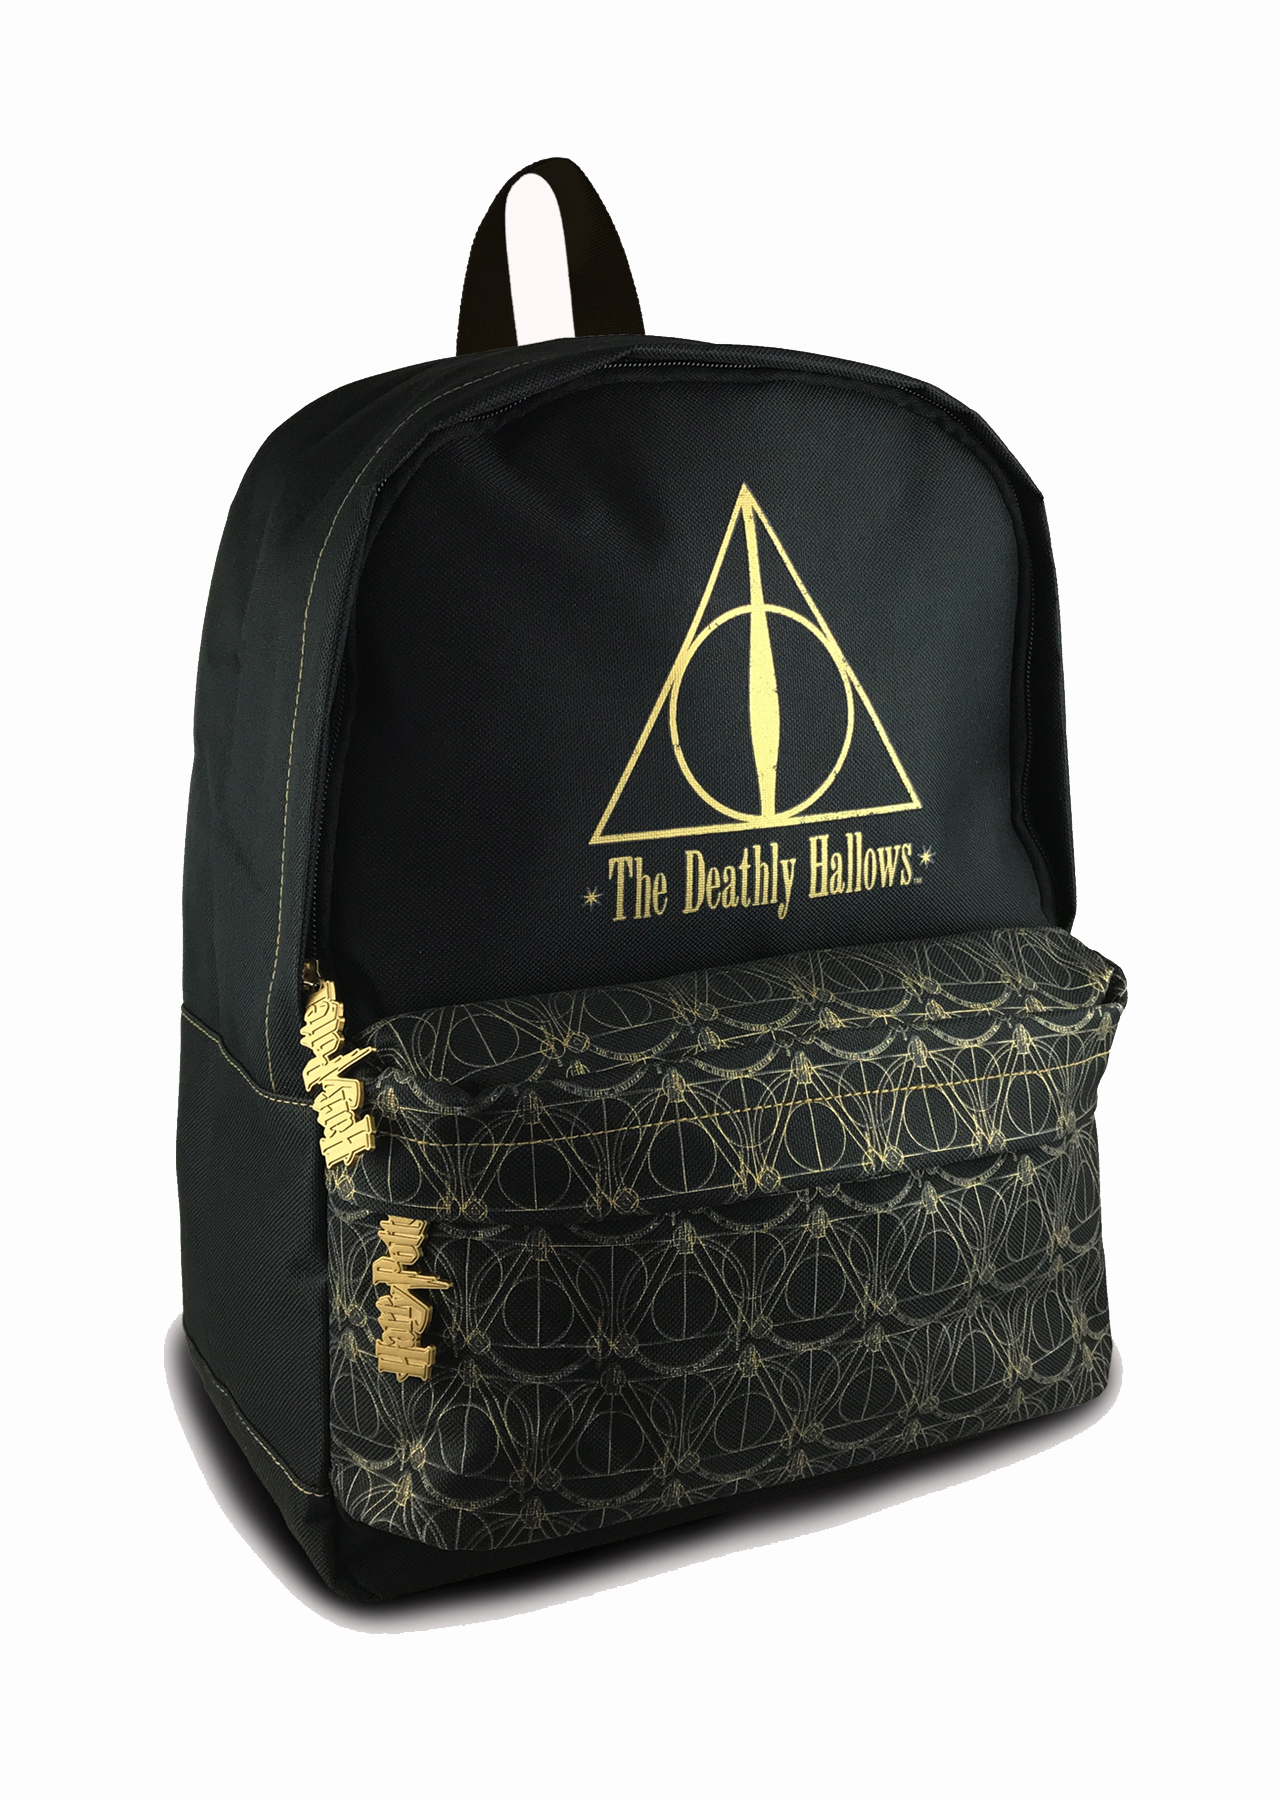 Harry Potter Deathly Hallows Backpack – Groovy UK